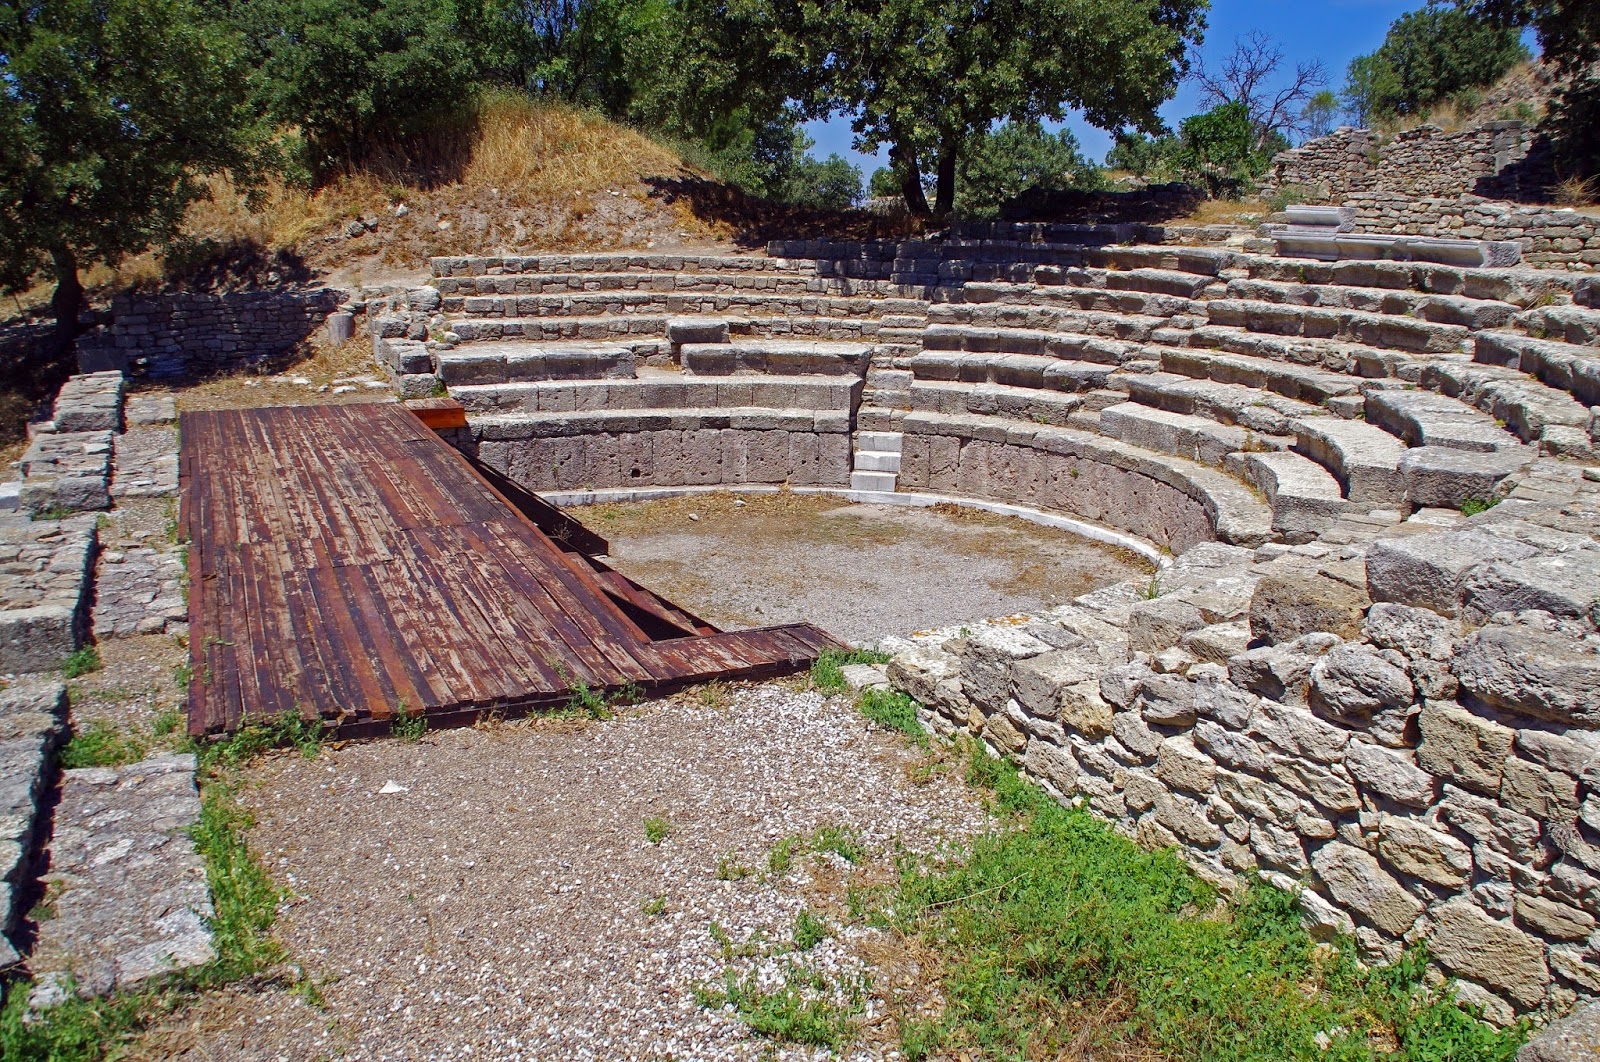 Amphitheater in Troy